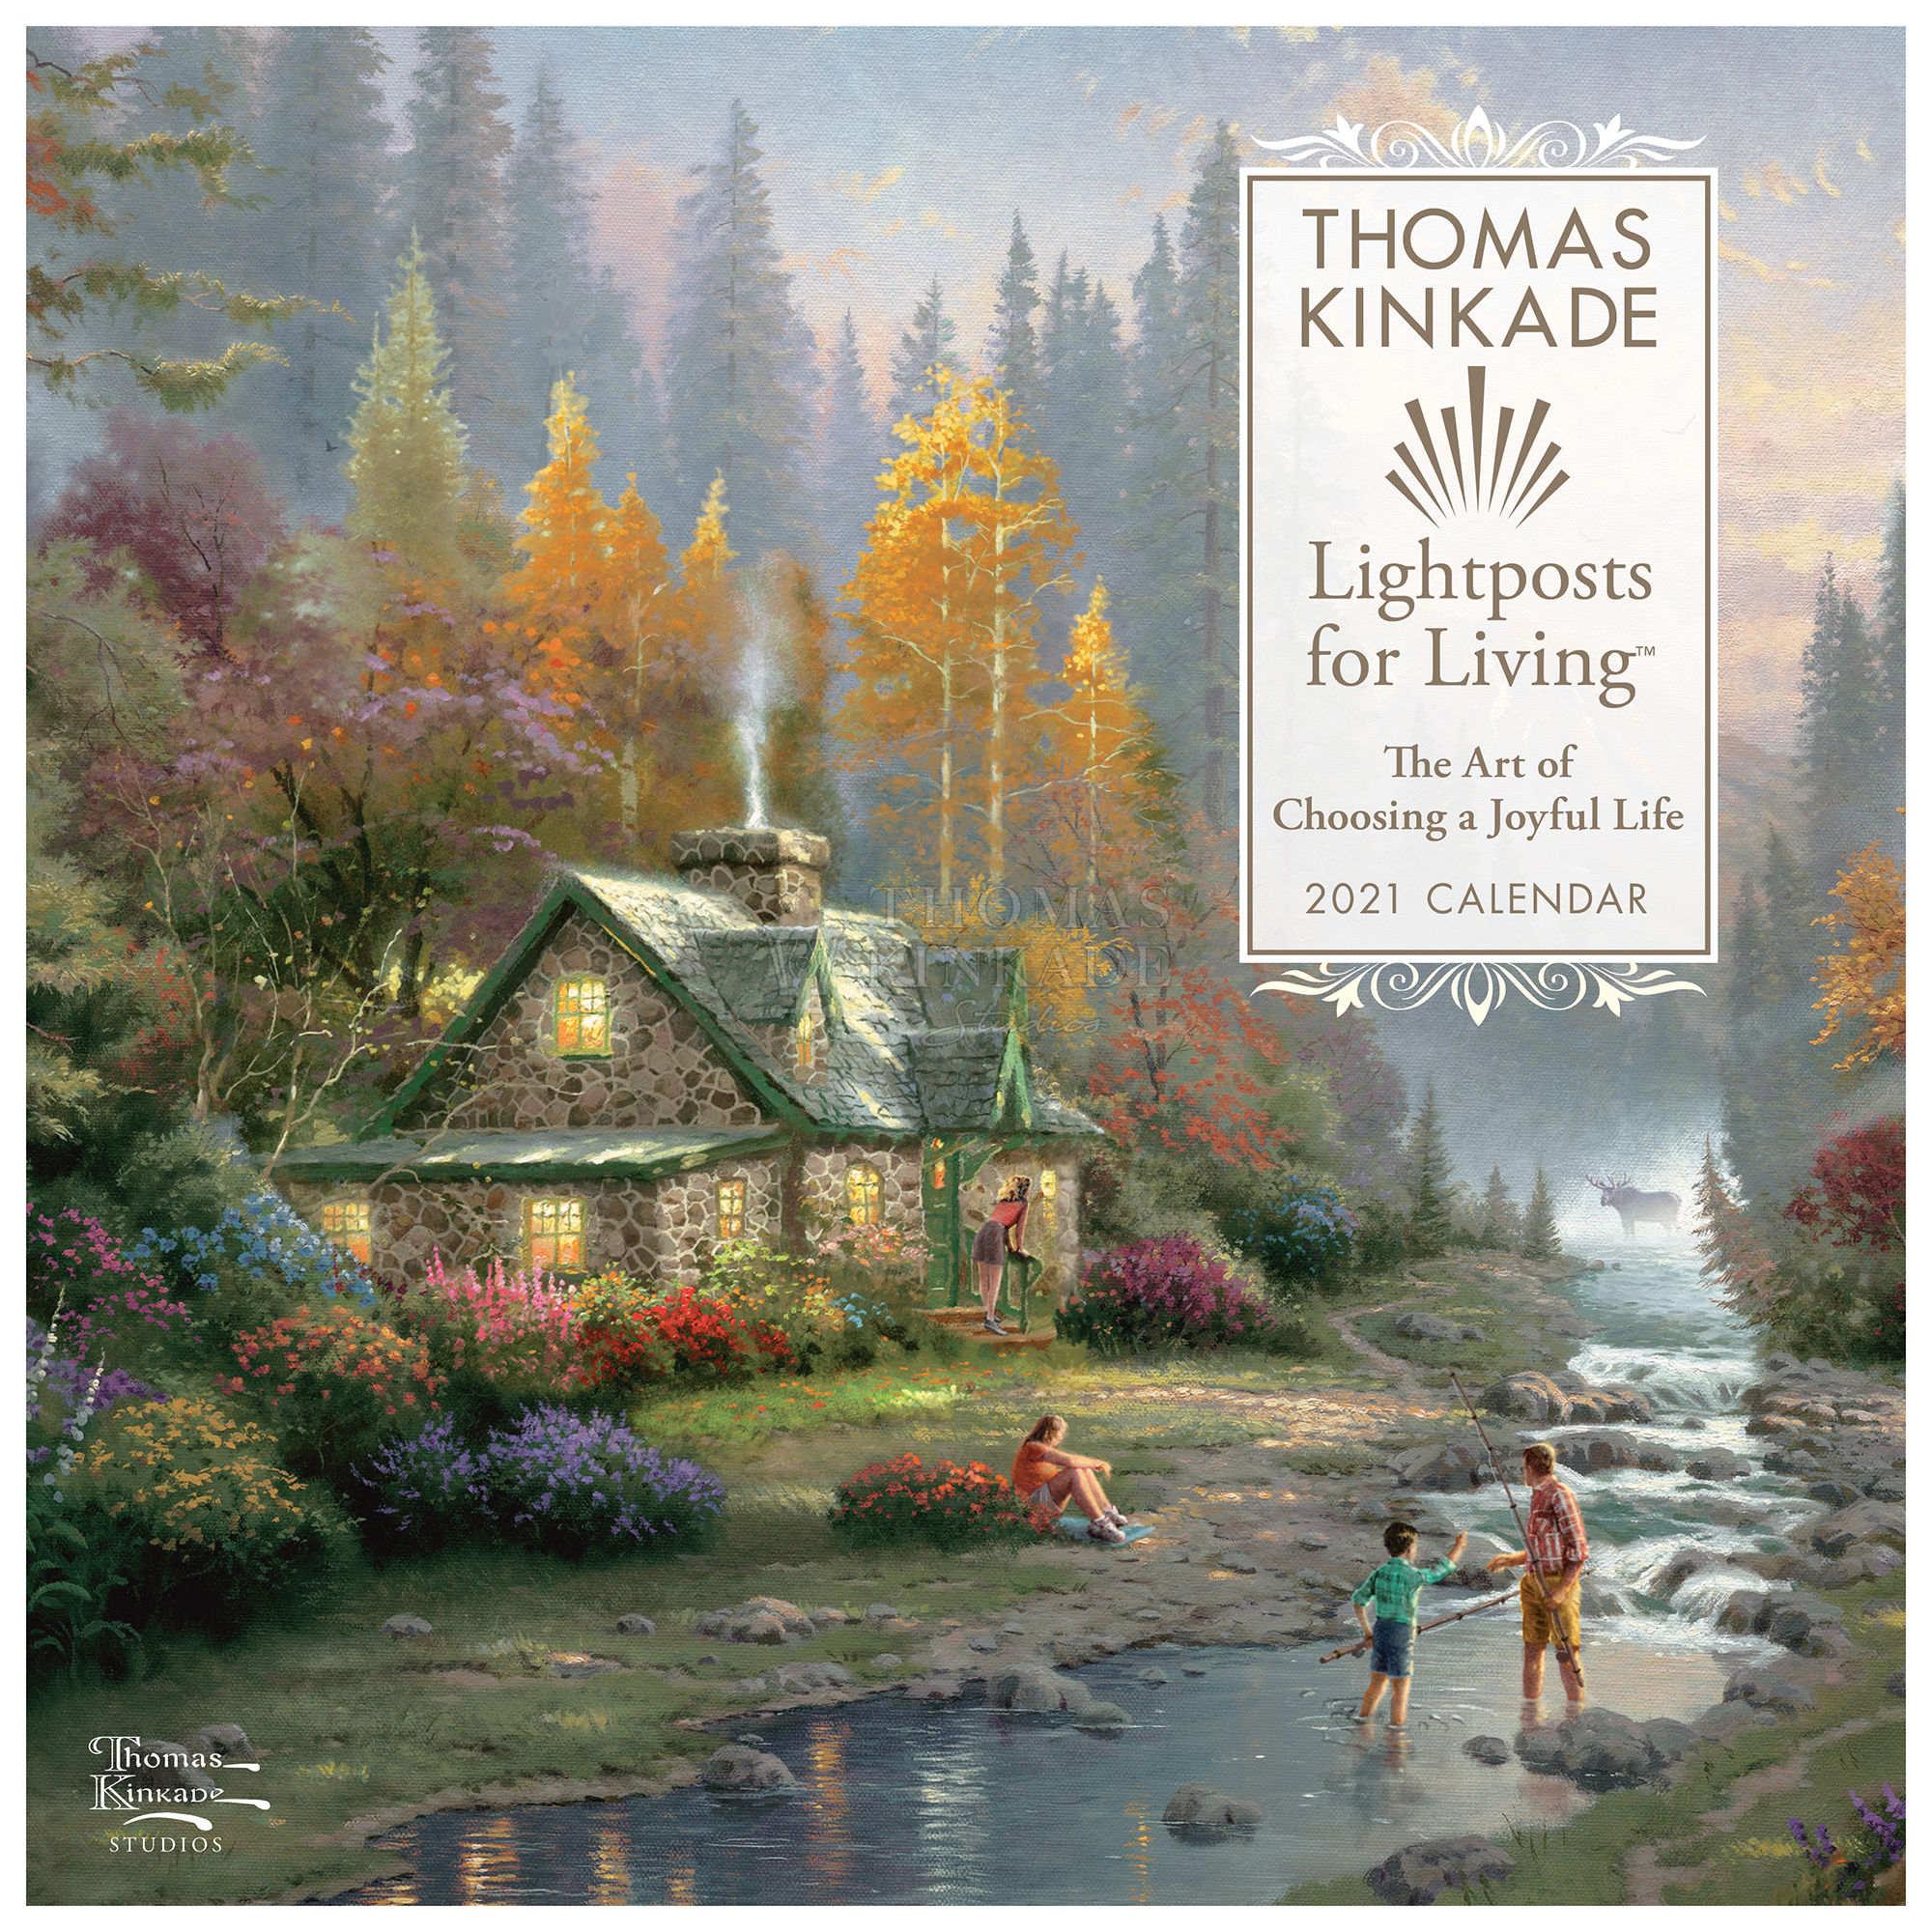 Thomas Kinkade Lightposts for Living 2021 Wall Calendar | Thomas